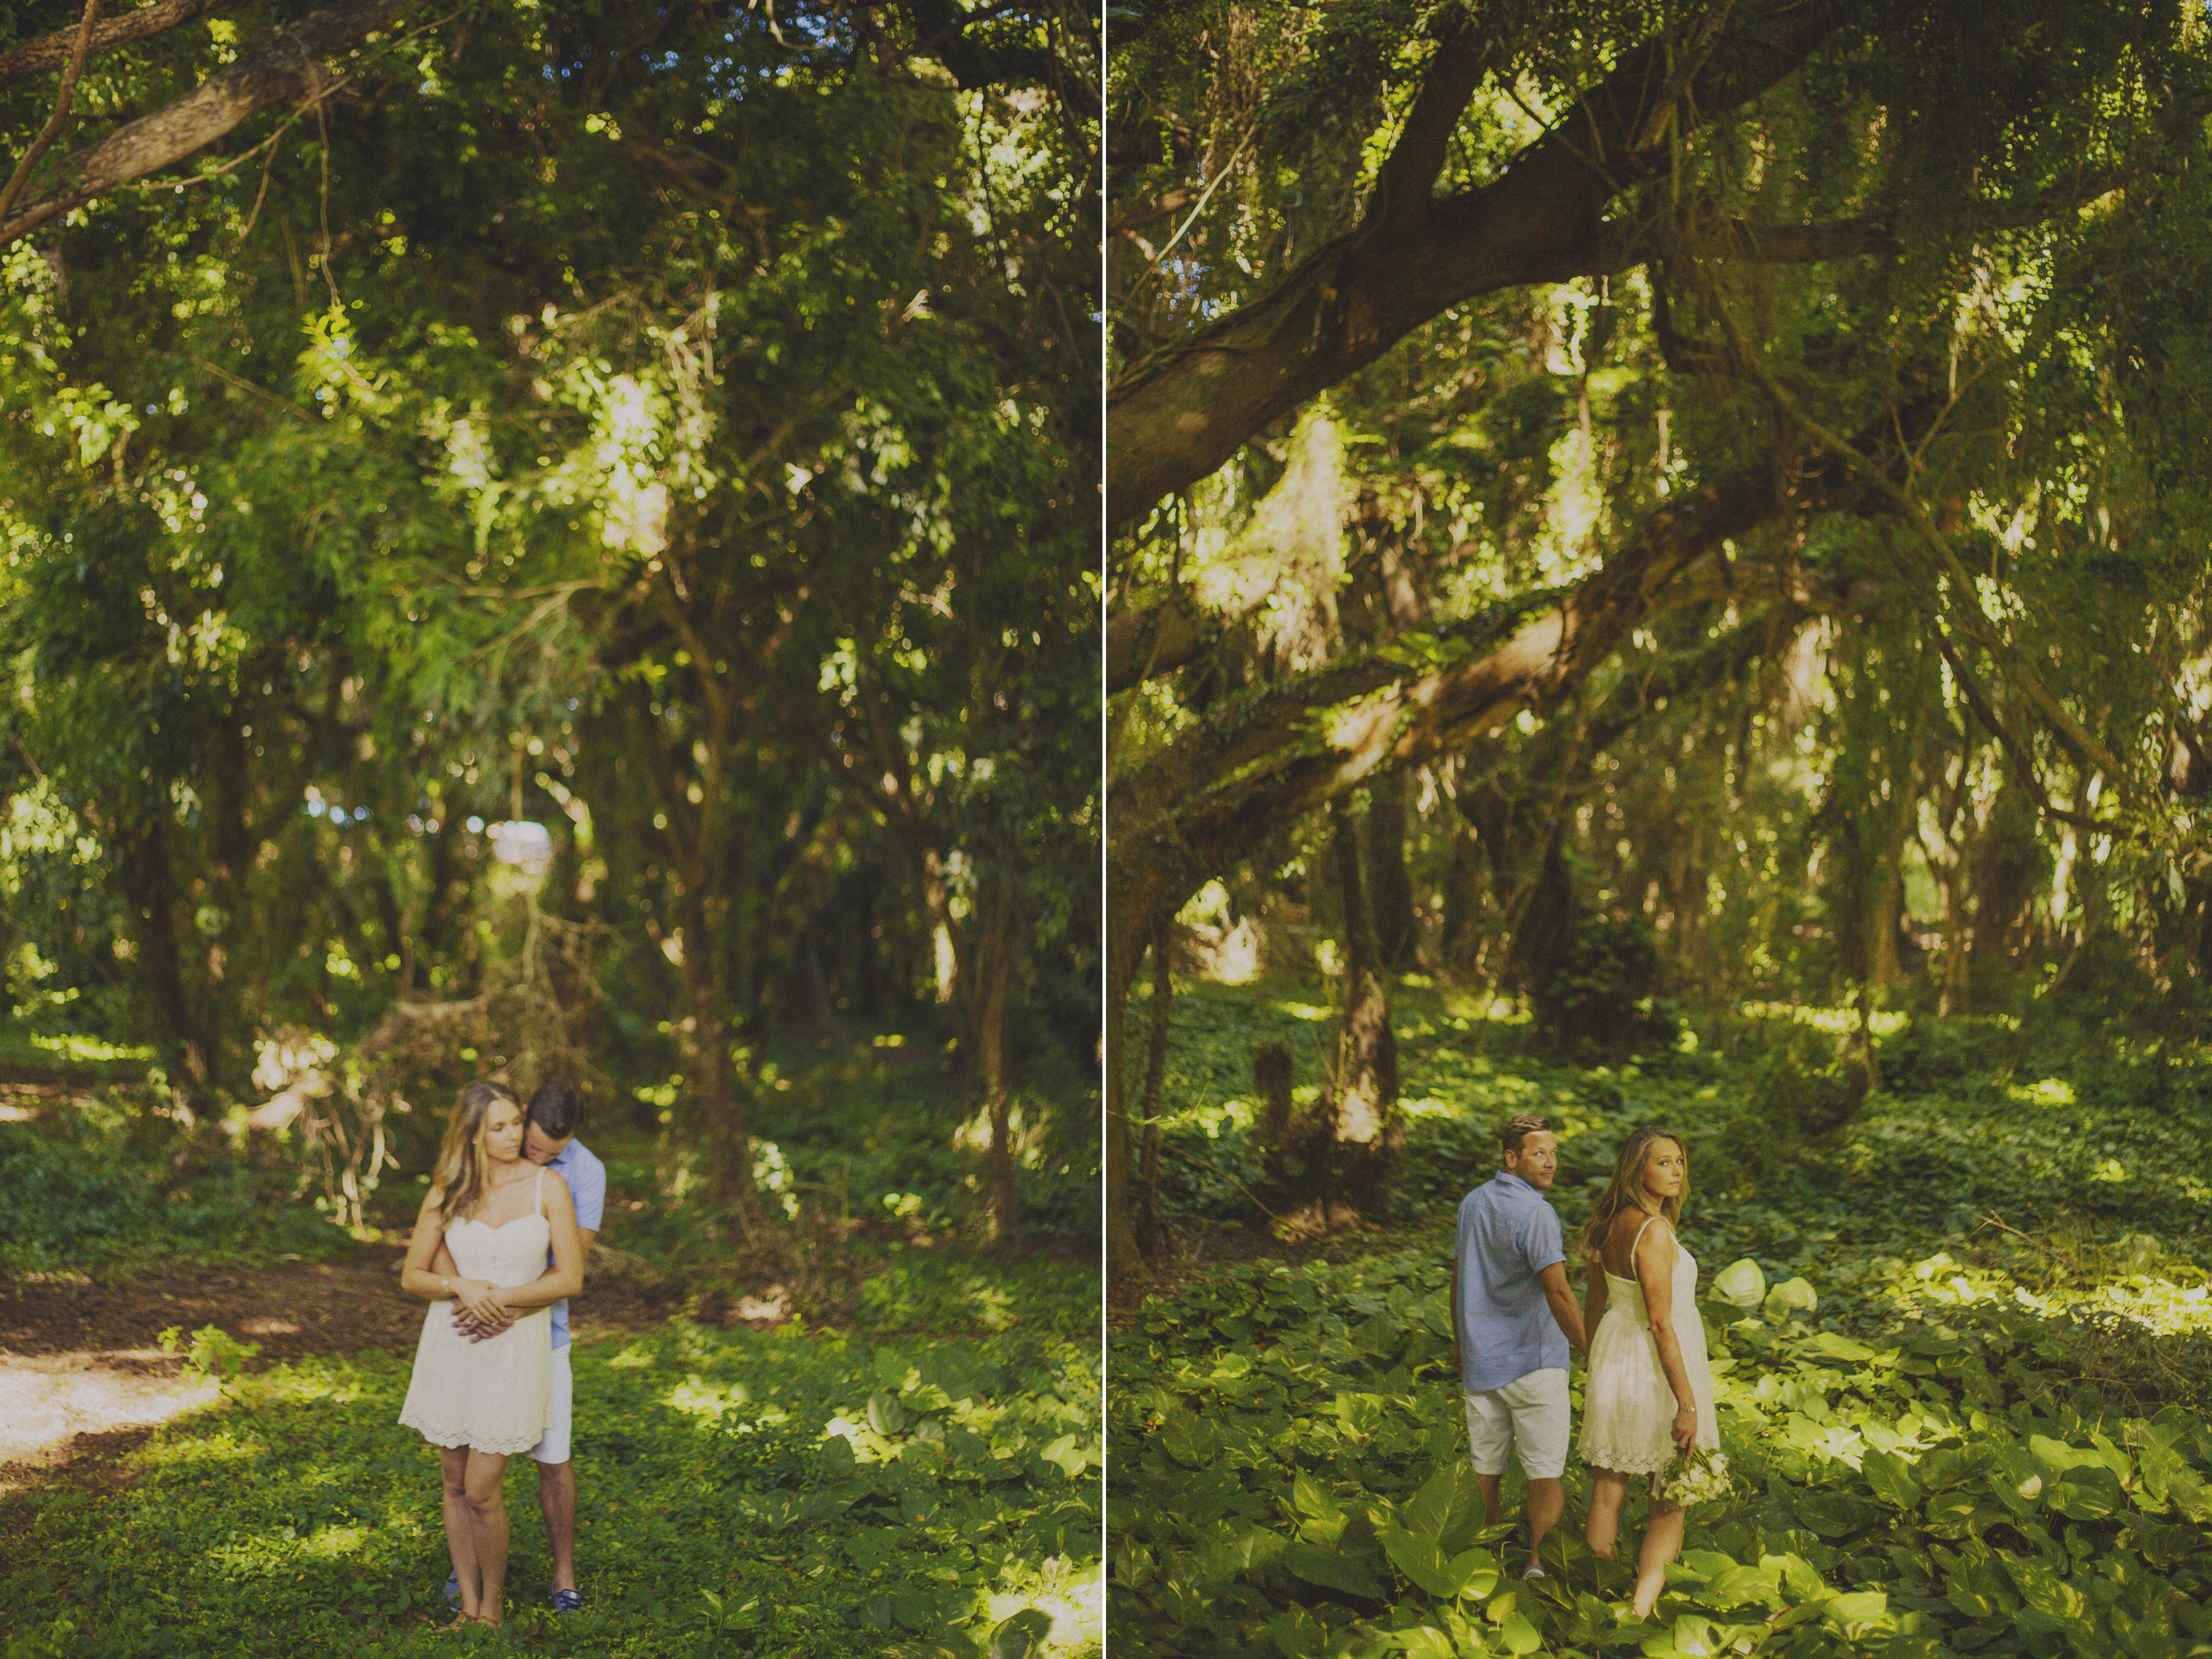 angie-diaz-photography-west-maui-forest-reserve-elopement-2.jpg